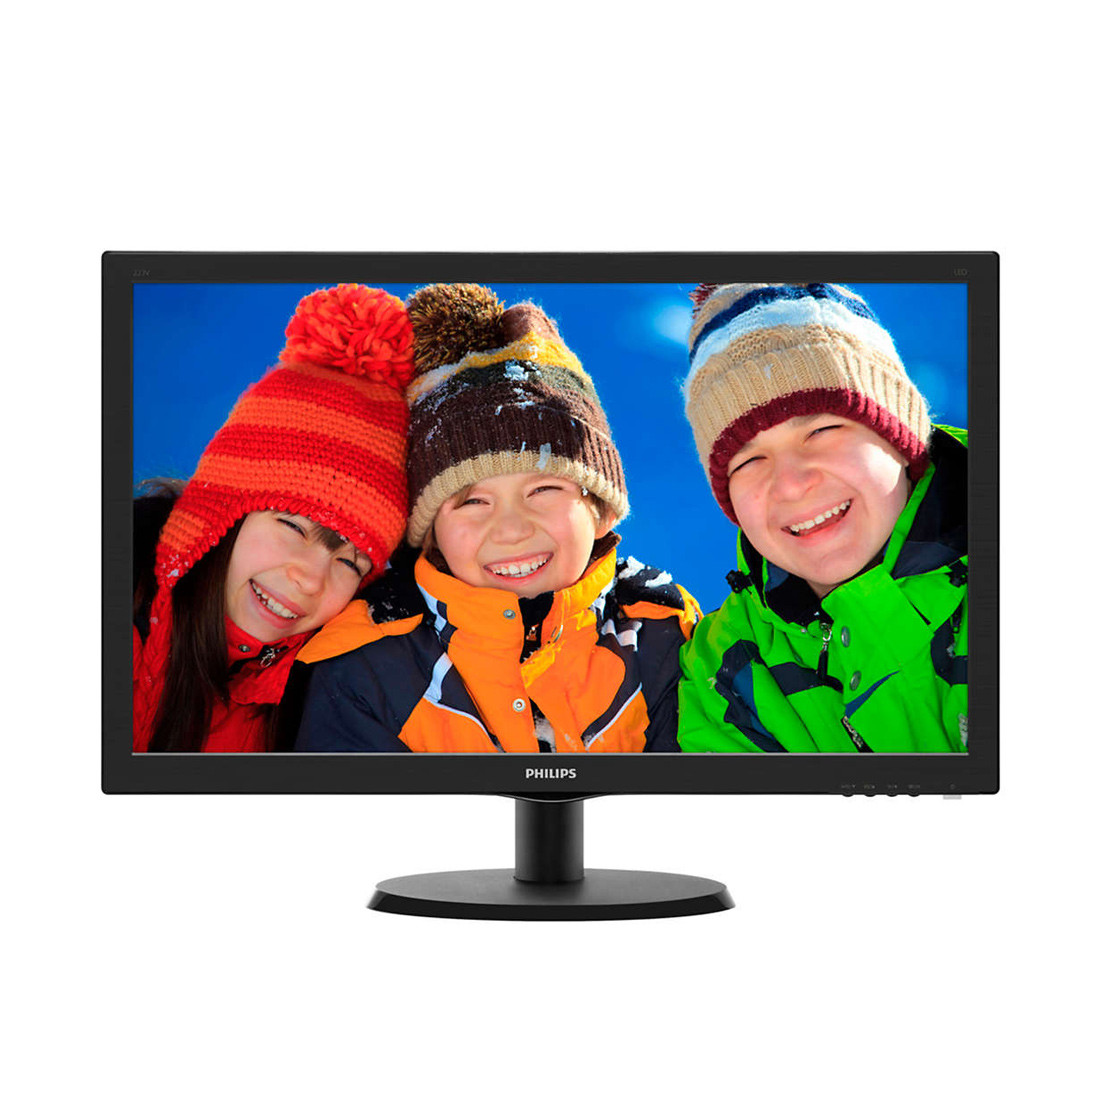 Монитор Philips 223V5LSB2/62 21.5/1920 x 1080 FHD/TN/VGA